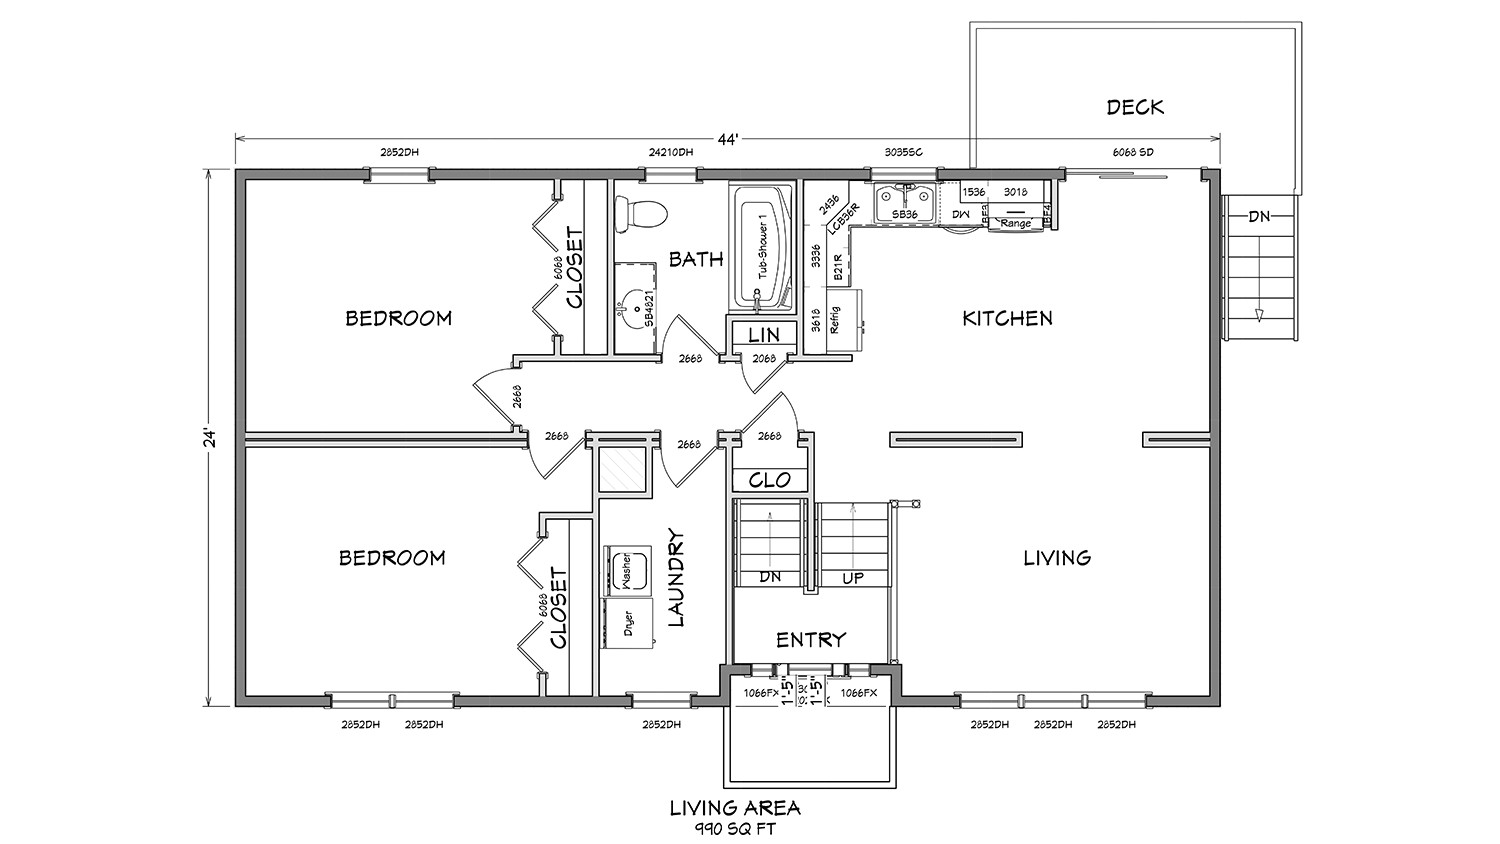 bl001 cape cod modular home floor plan 01